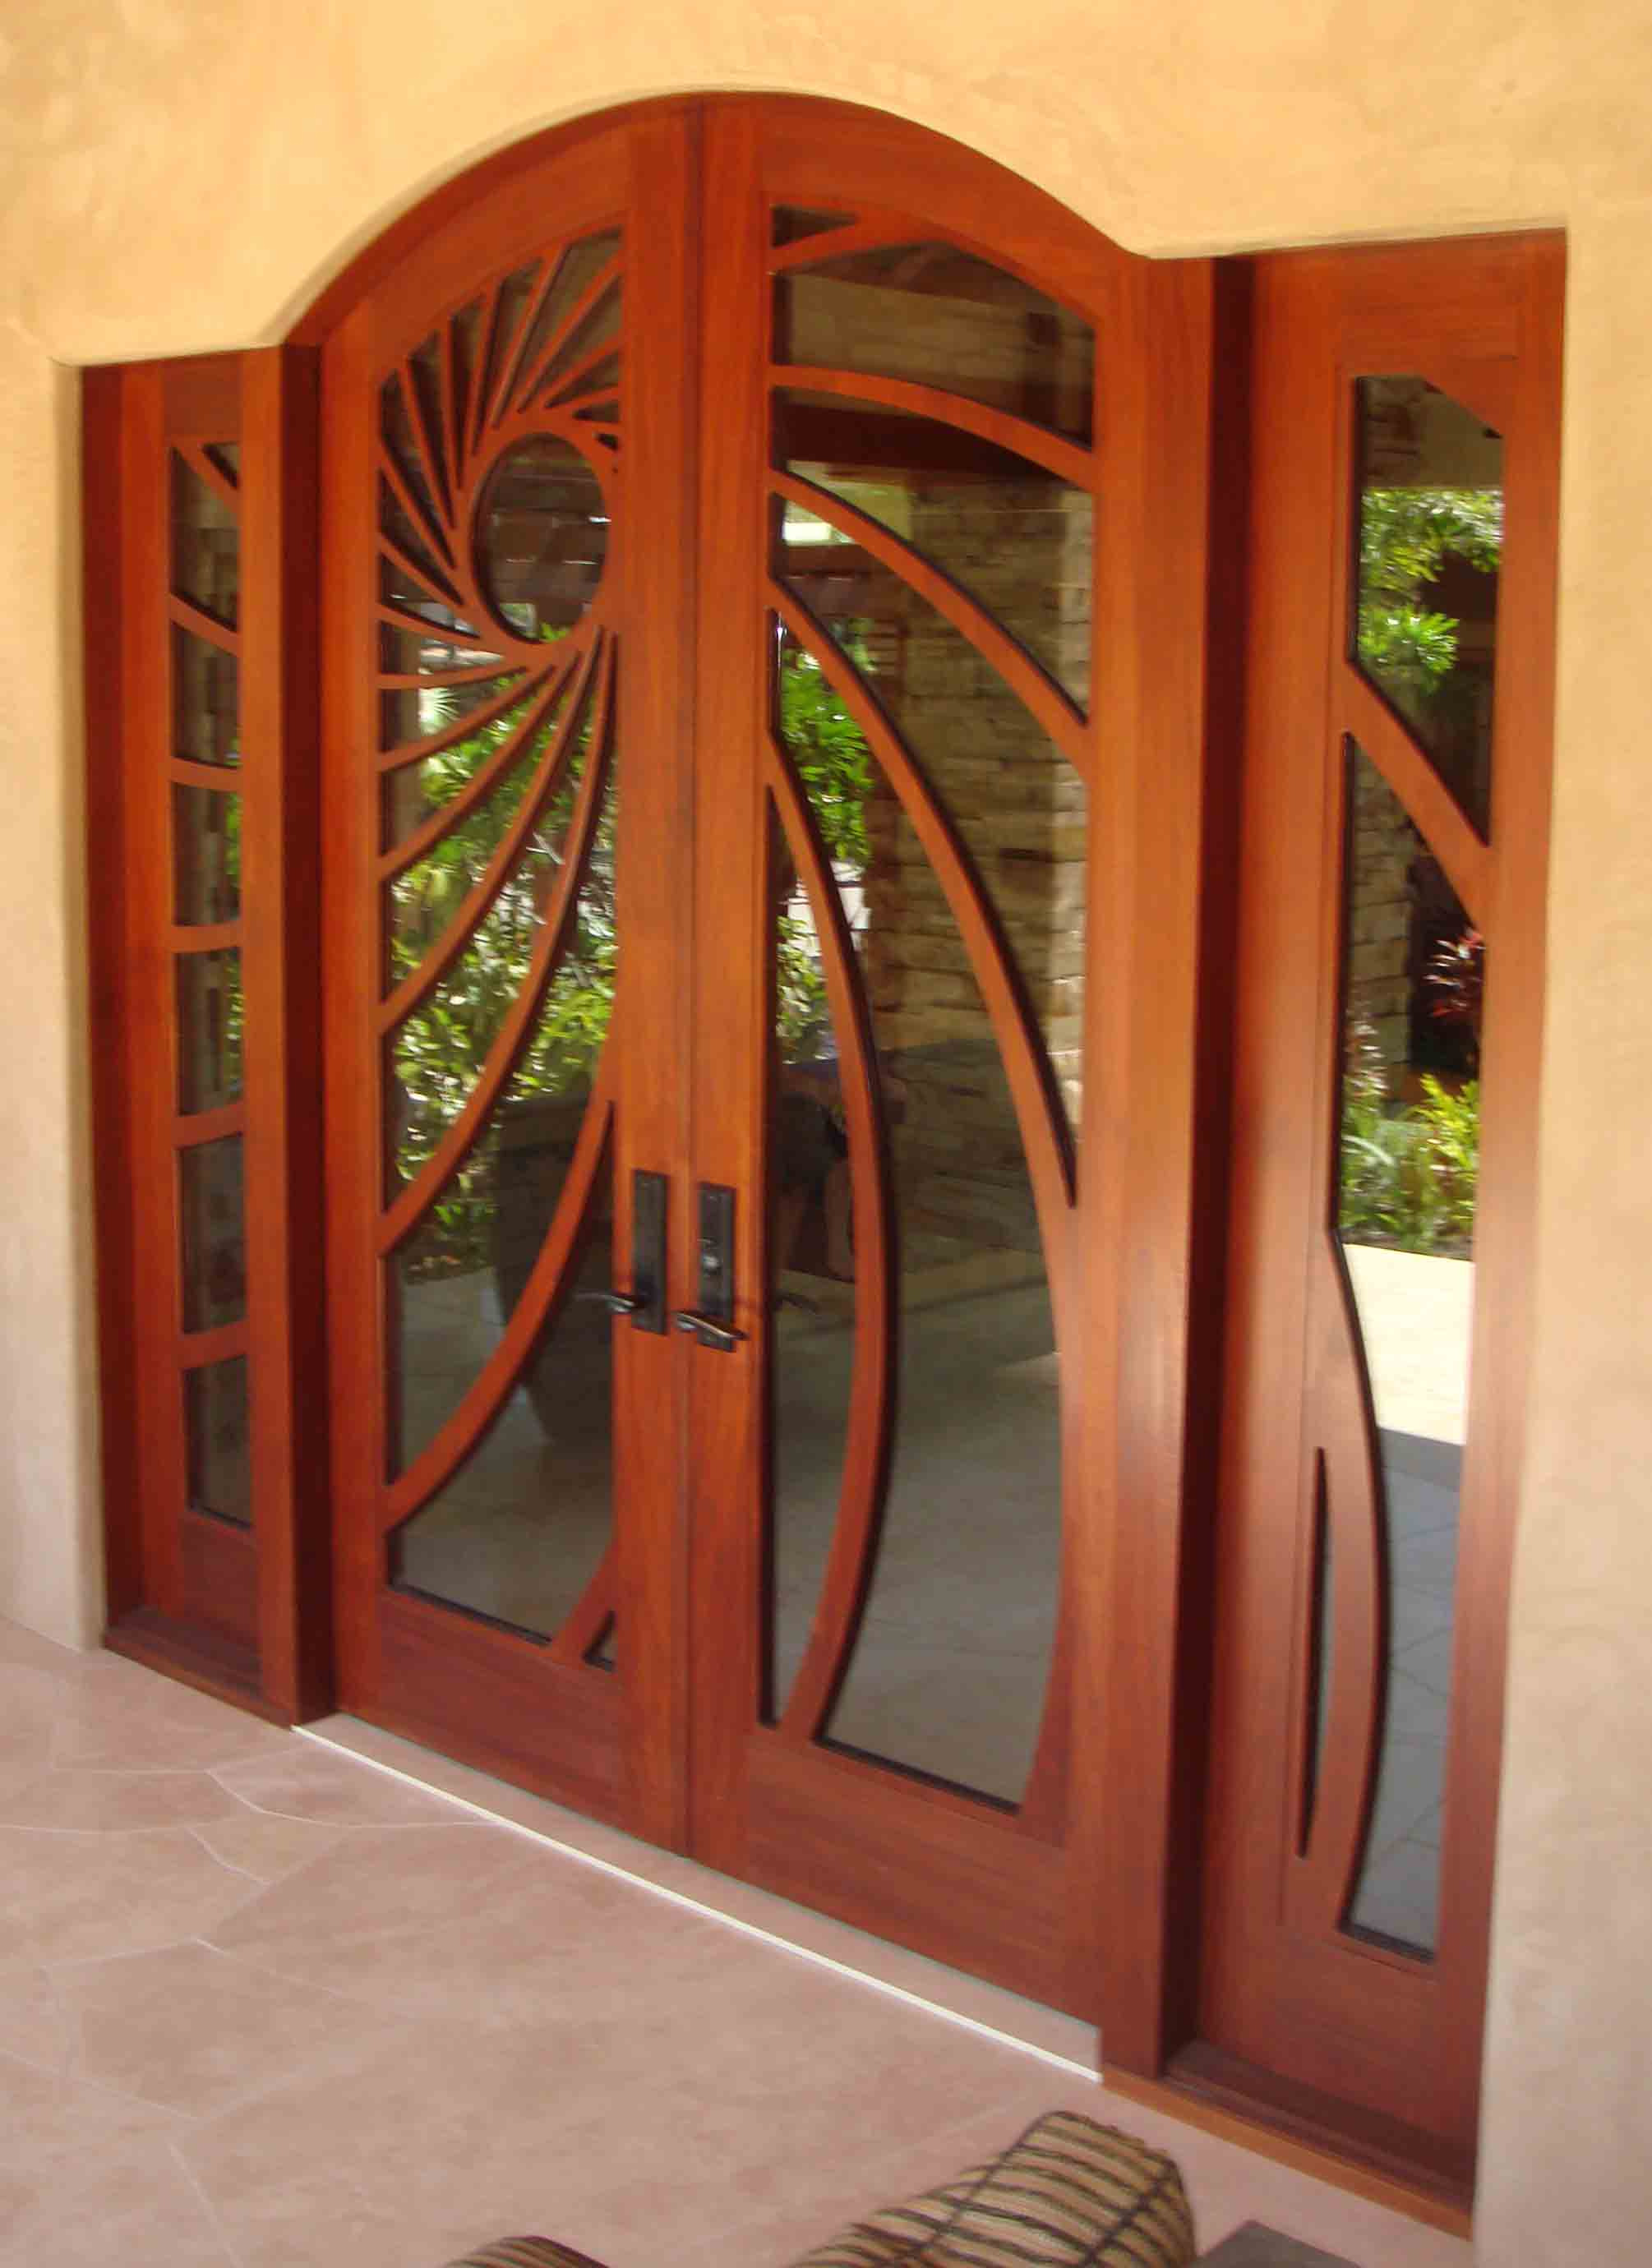 priceless wooden door designing door designing home door design main door design wooden wooden door designing l 02b1d3d082ac1a07